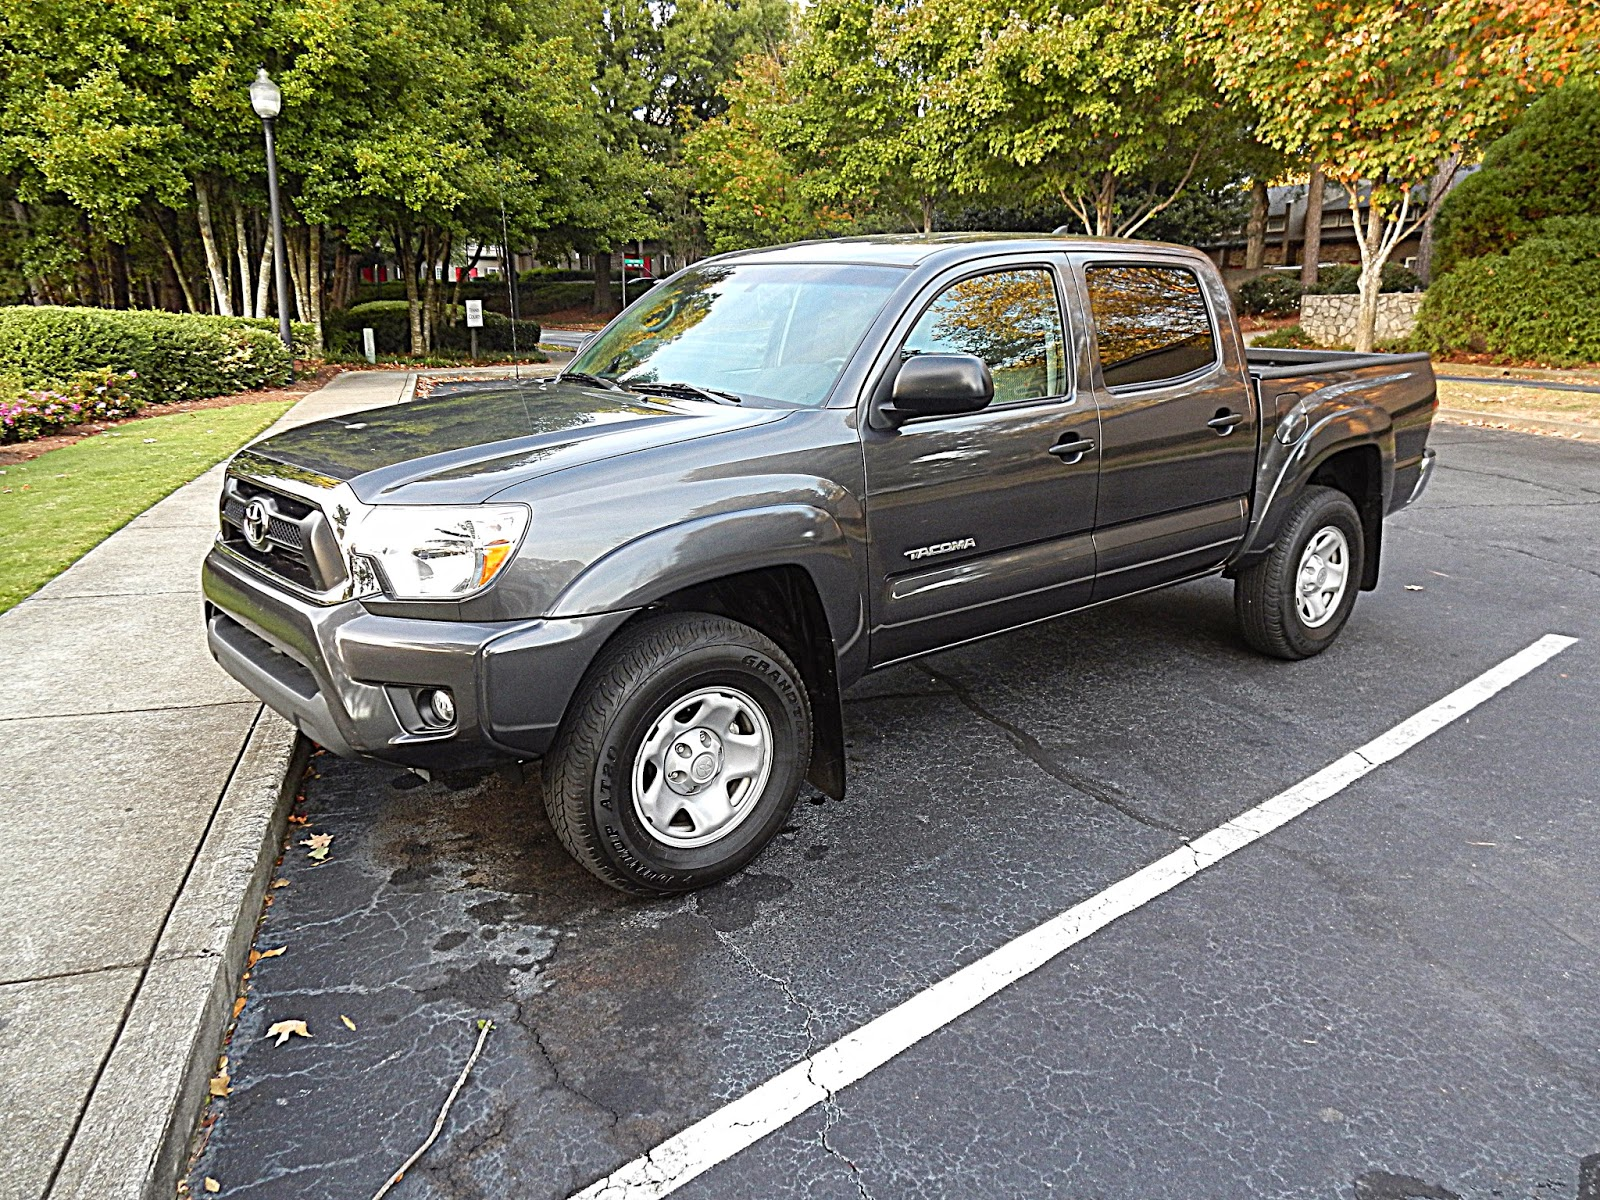 After riding in the 2014 toyota tundra 4x2 1794 crewmax i felt super comfortable handling the tacoma double cab the toyota tacoma is ranked as the